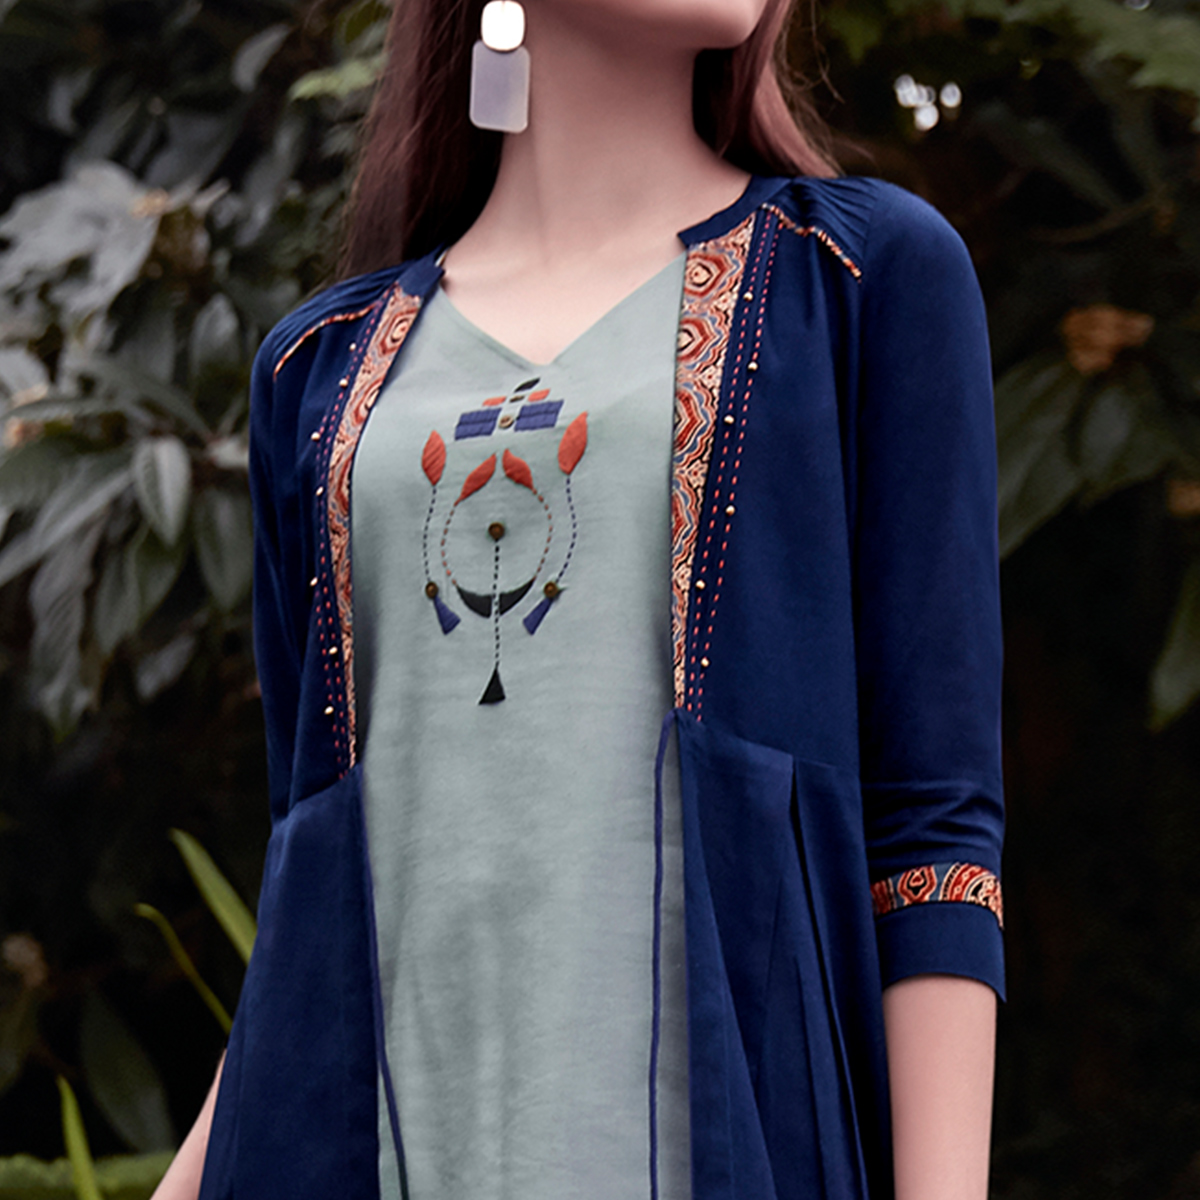 Refreshing Grey-Navy Blue Colored Partywear Embroidered Rayon Top-Bottom Set With Shrug